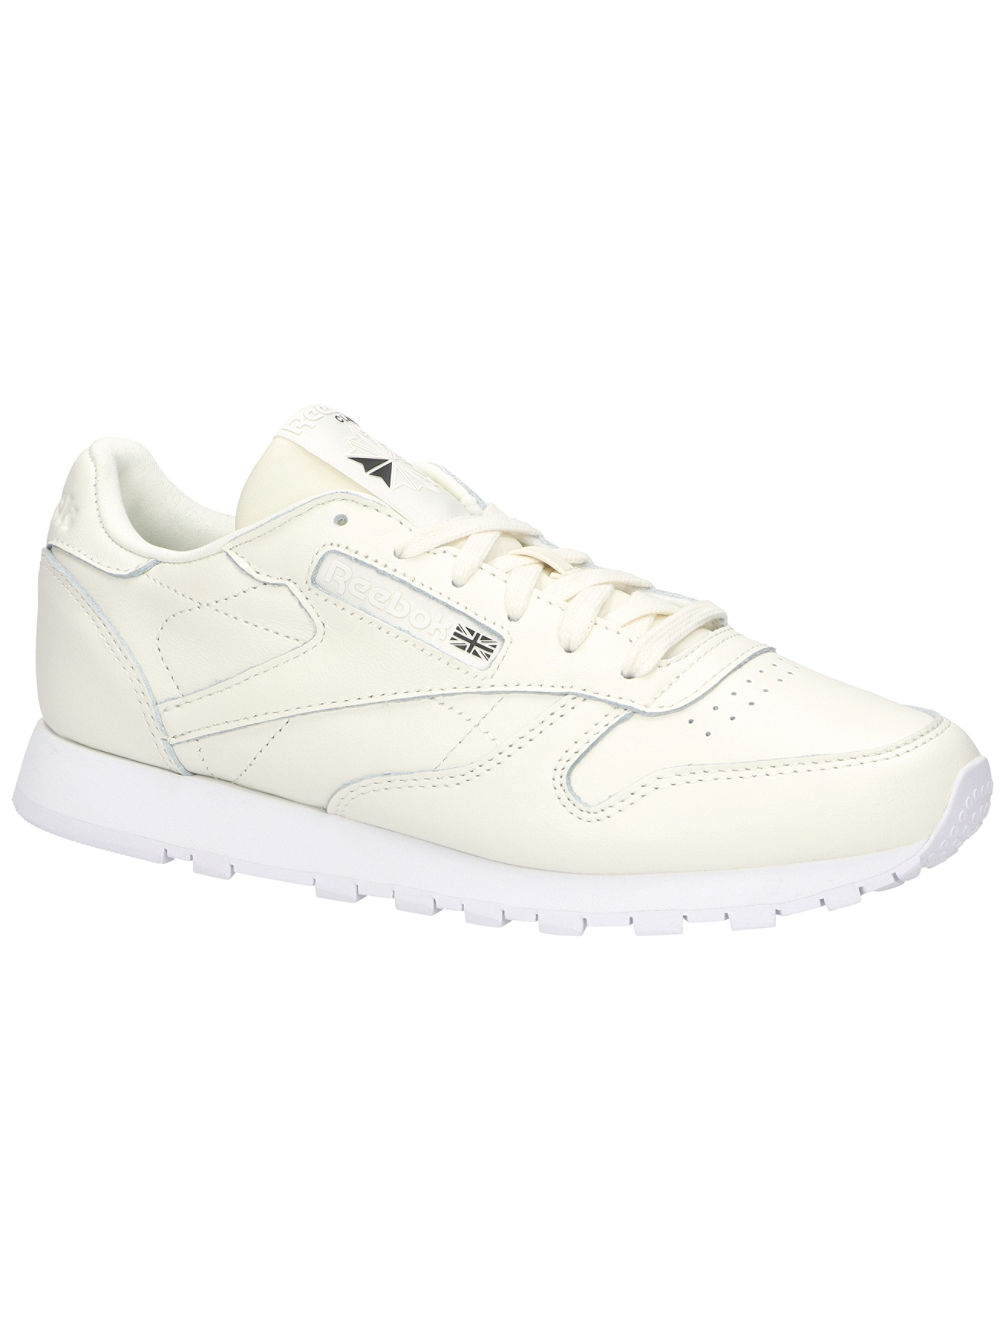 Classic Leather x FACE Zapatillas deportivas Women